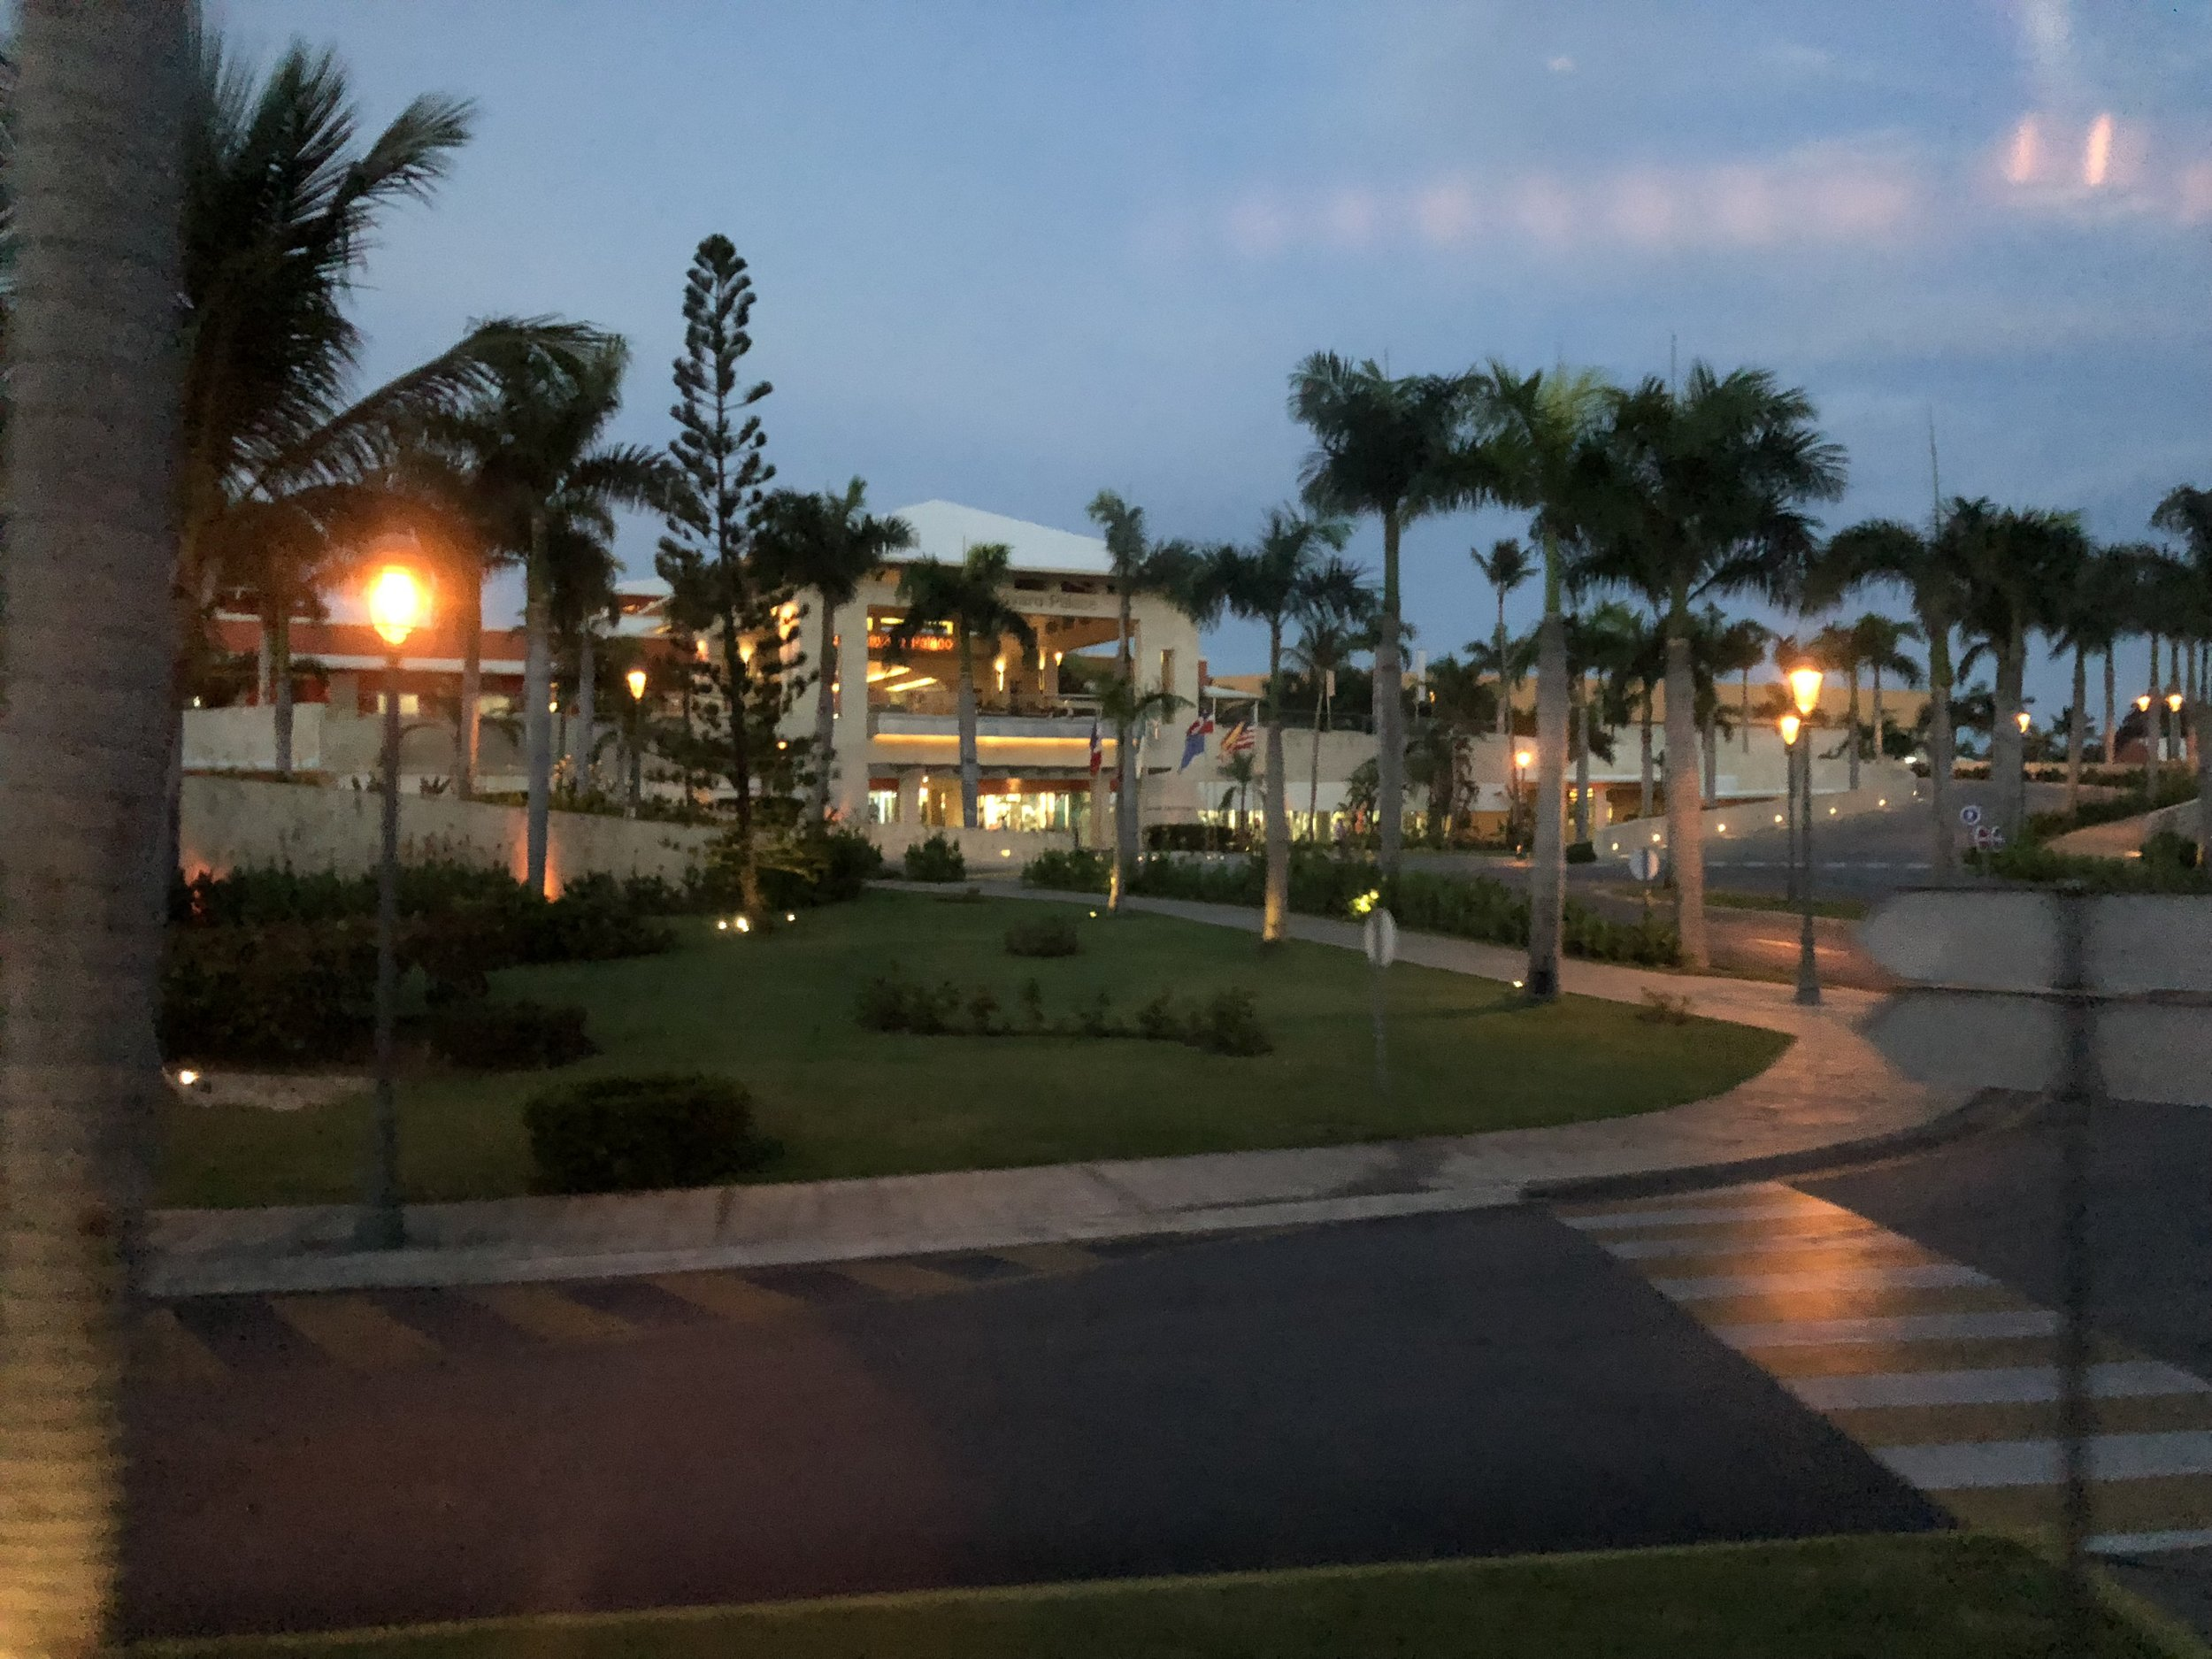 Entering the Barcelo Bavaro Palace, the family side of the resort.